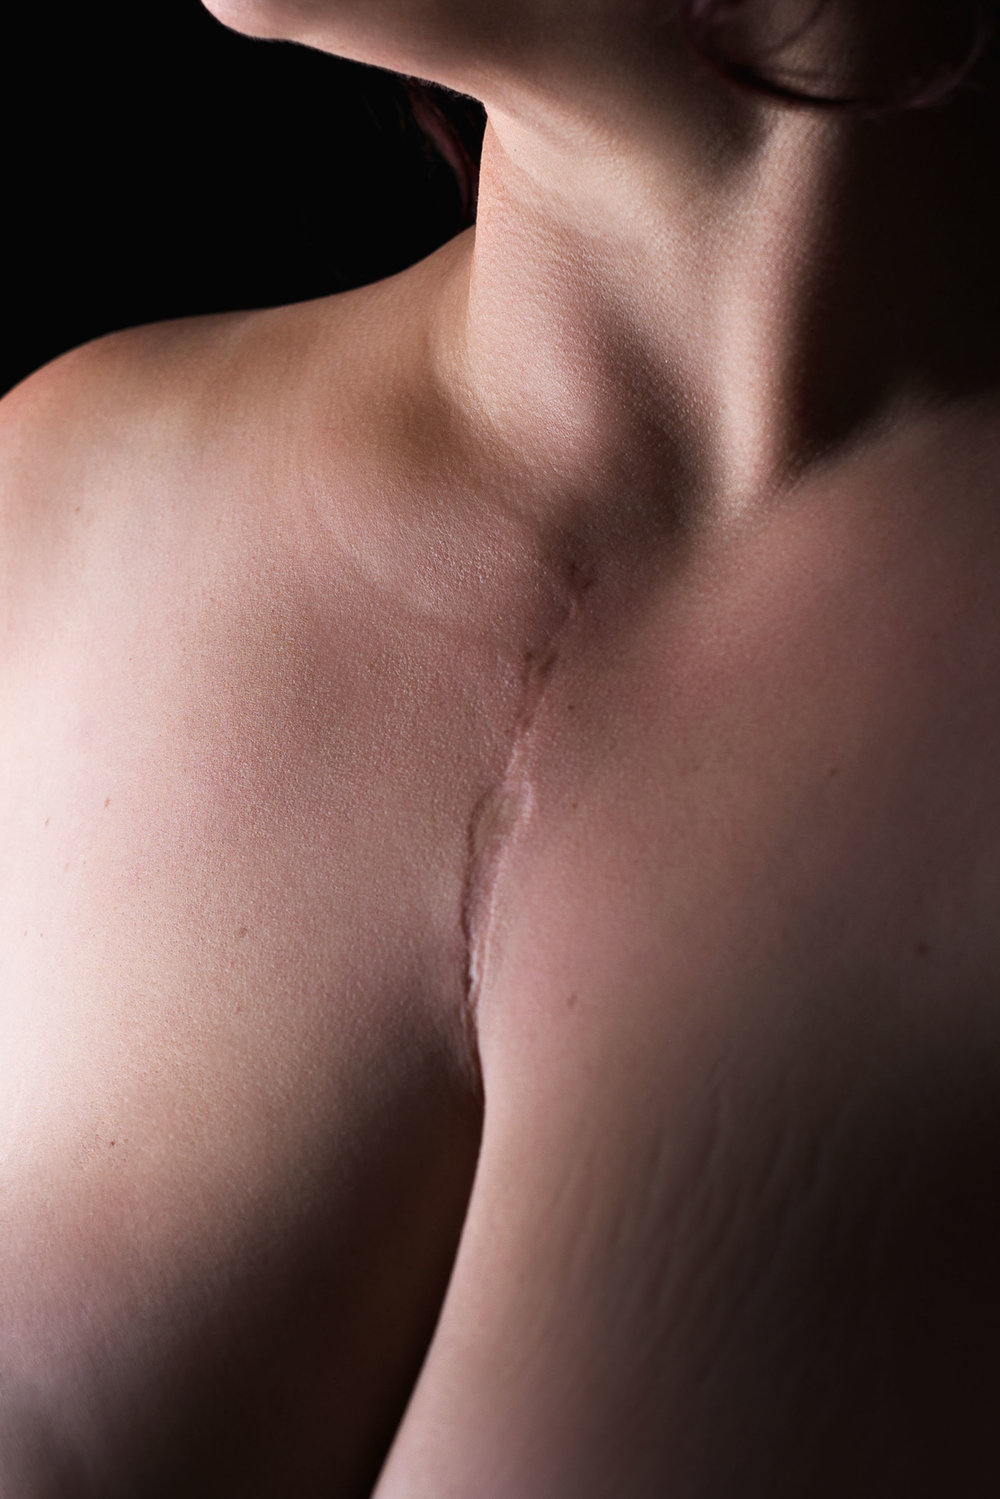 bodyscape of woman's chest